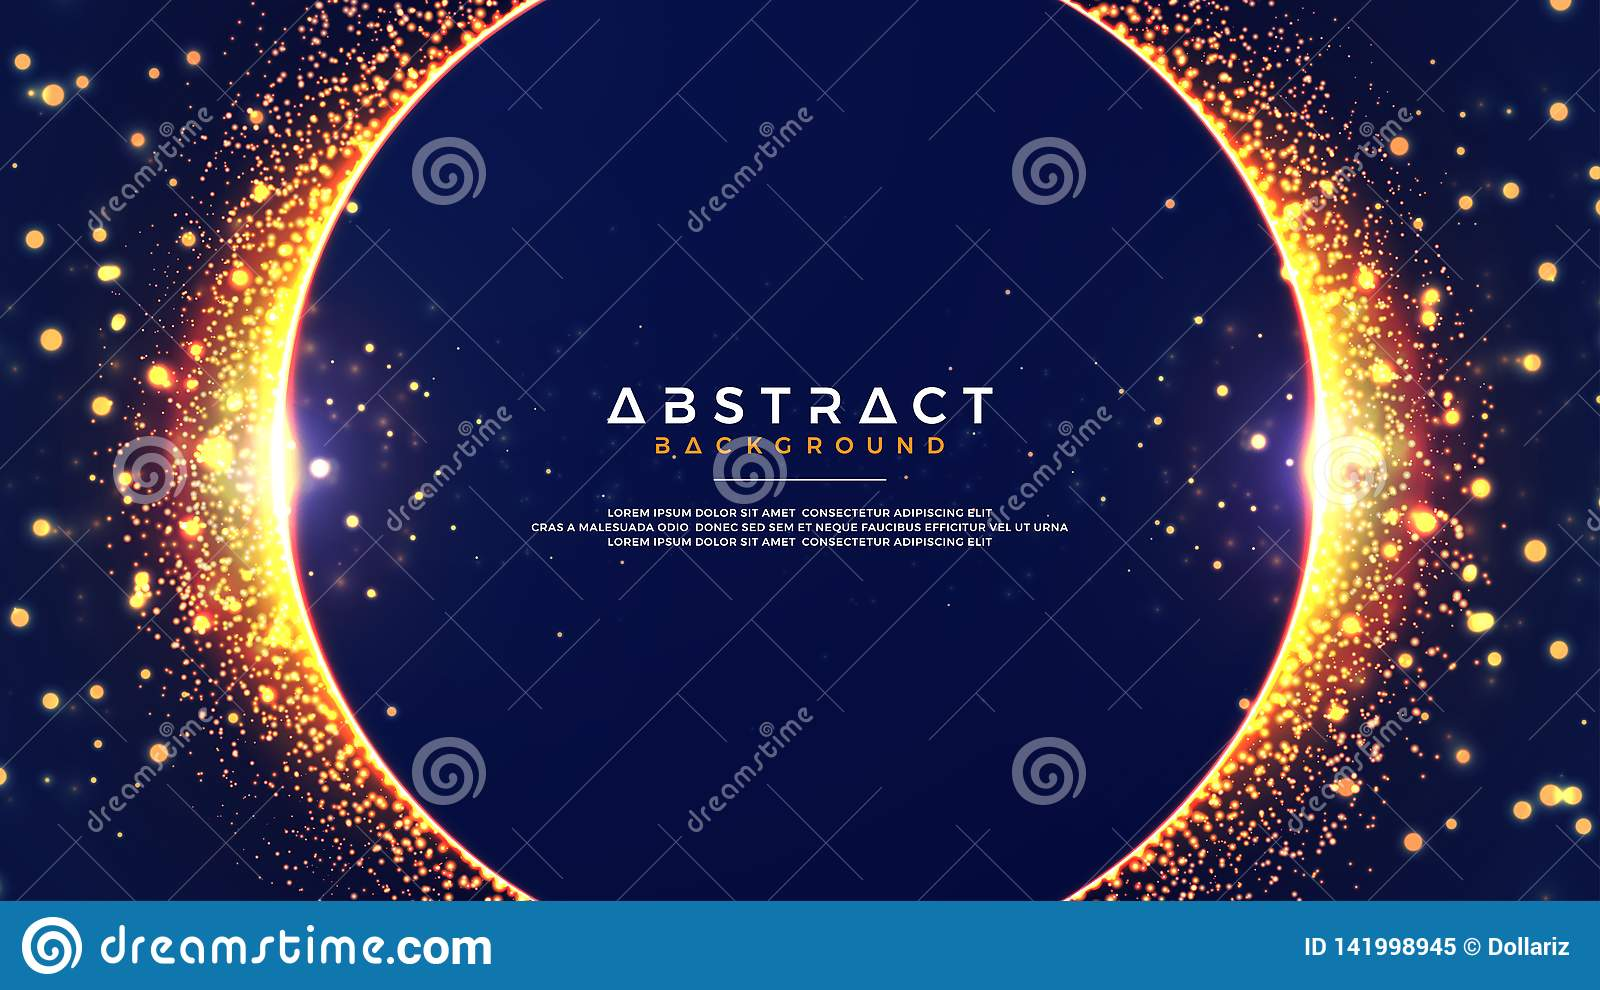 Abstract background with a combination of blur bokeh effects. Abstract Glowing particle circle background. Eps10 vector